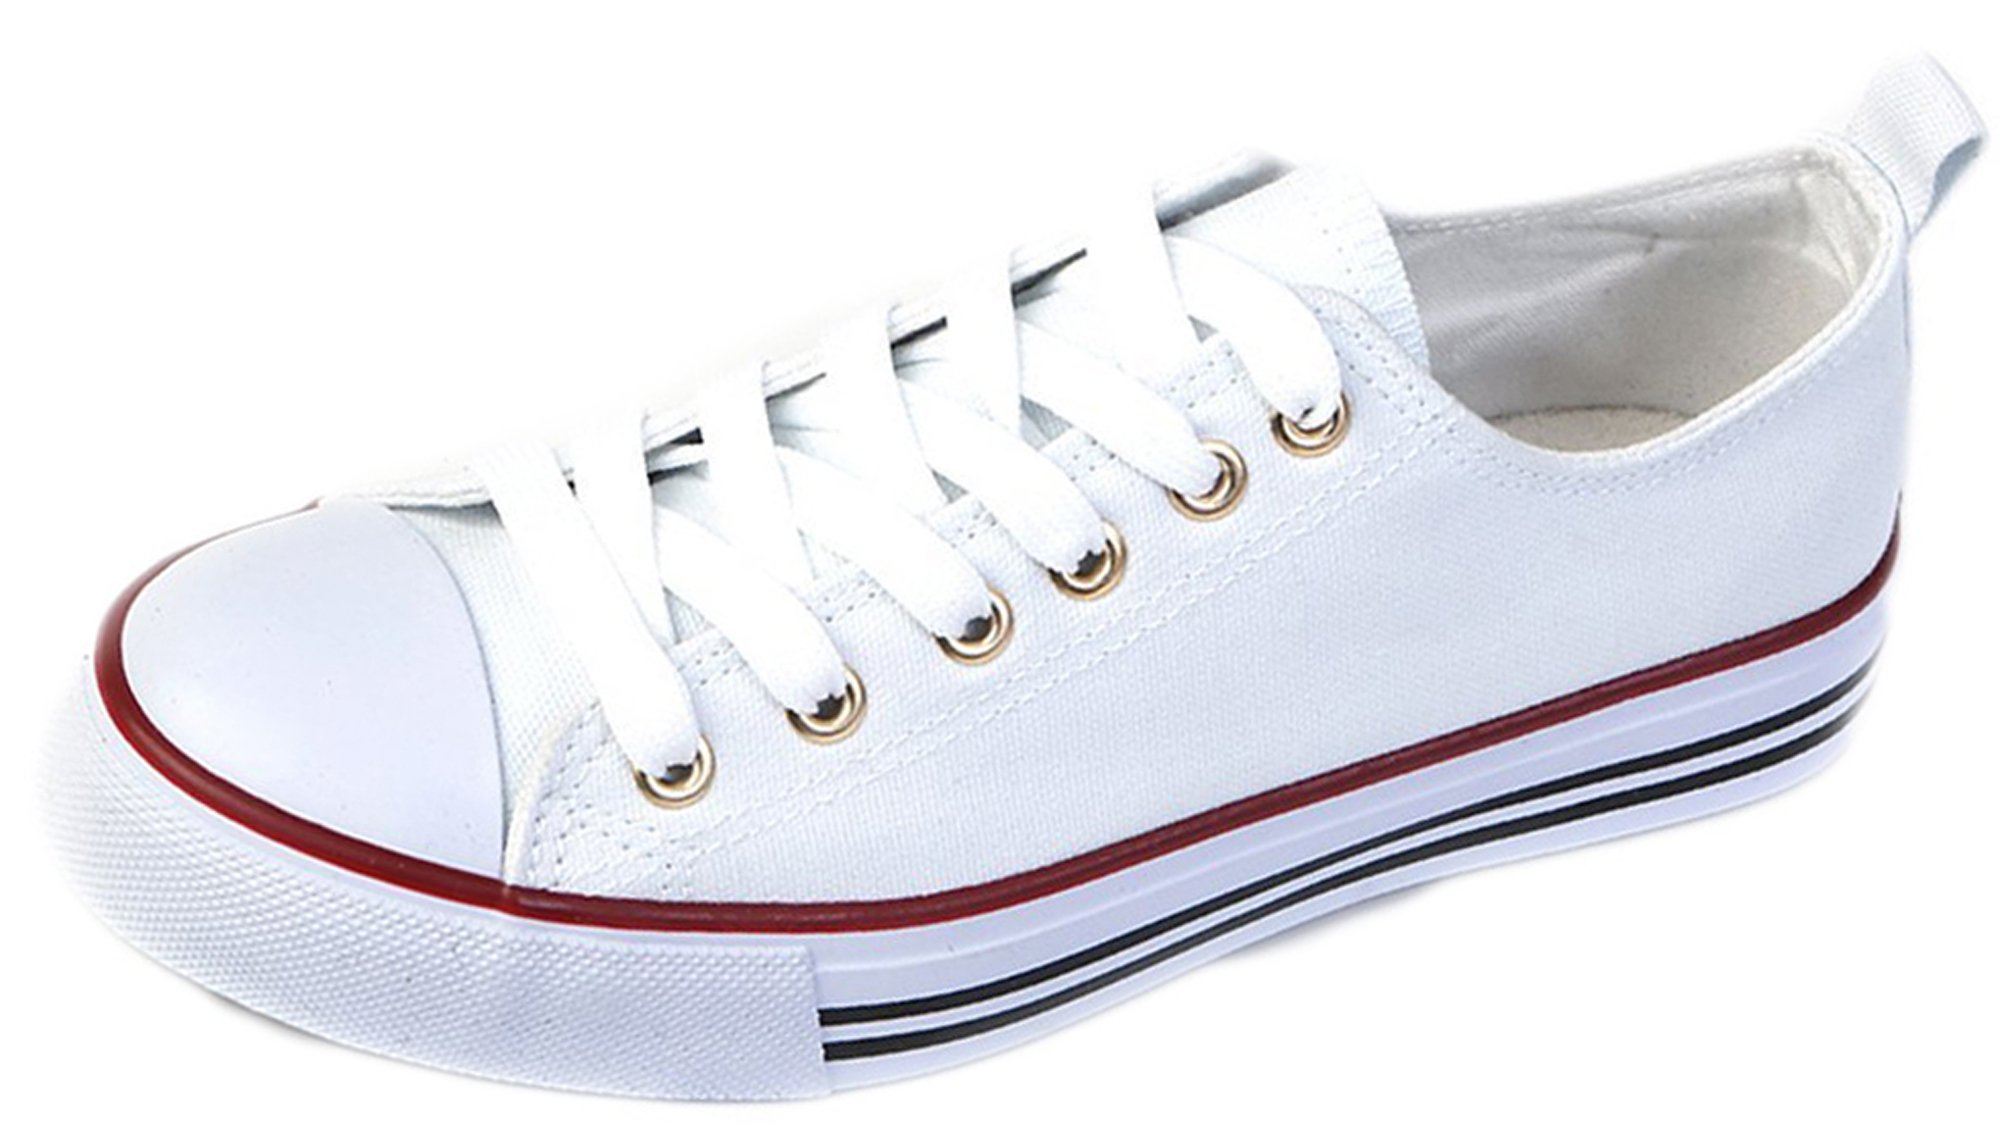 Haughty Womens Canvas Shoes Low Top Lace up Casual Sneakers Gym Trainers (6, White)